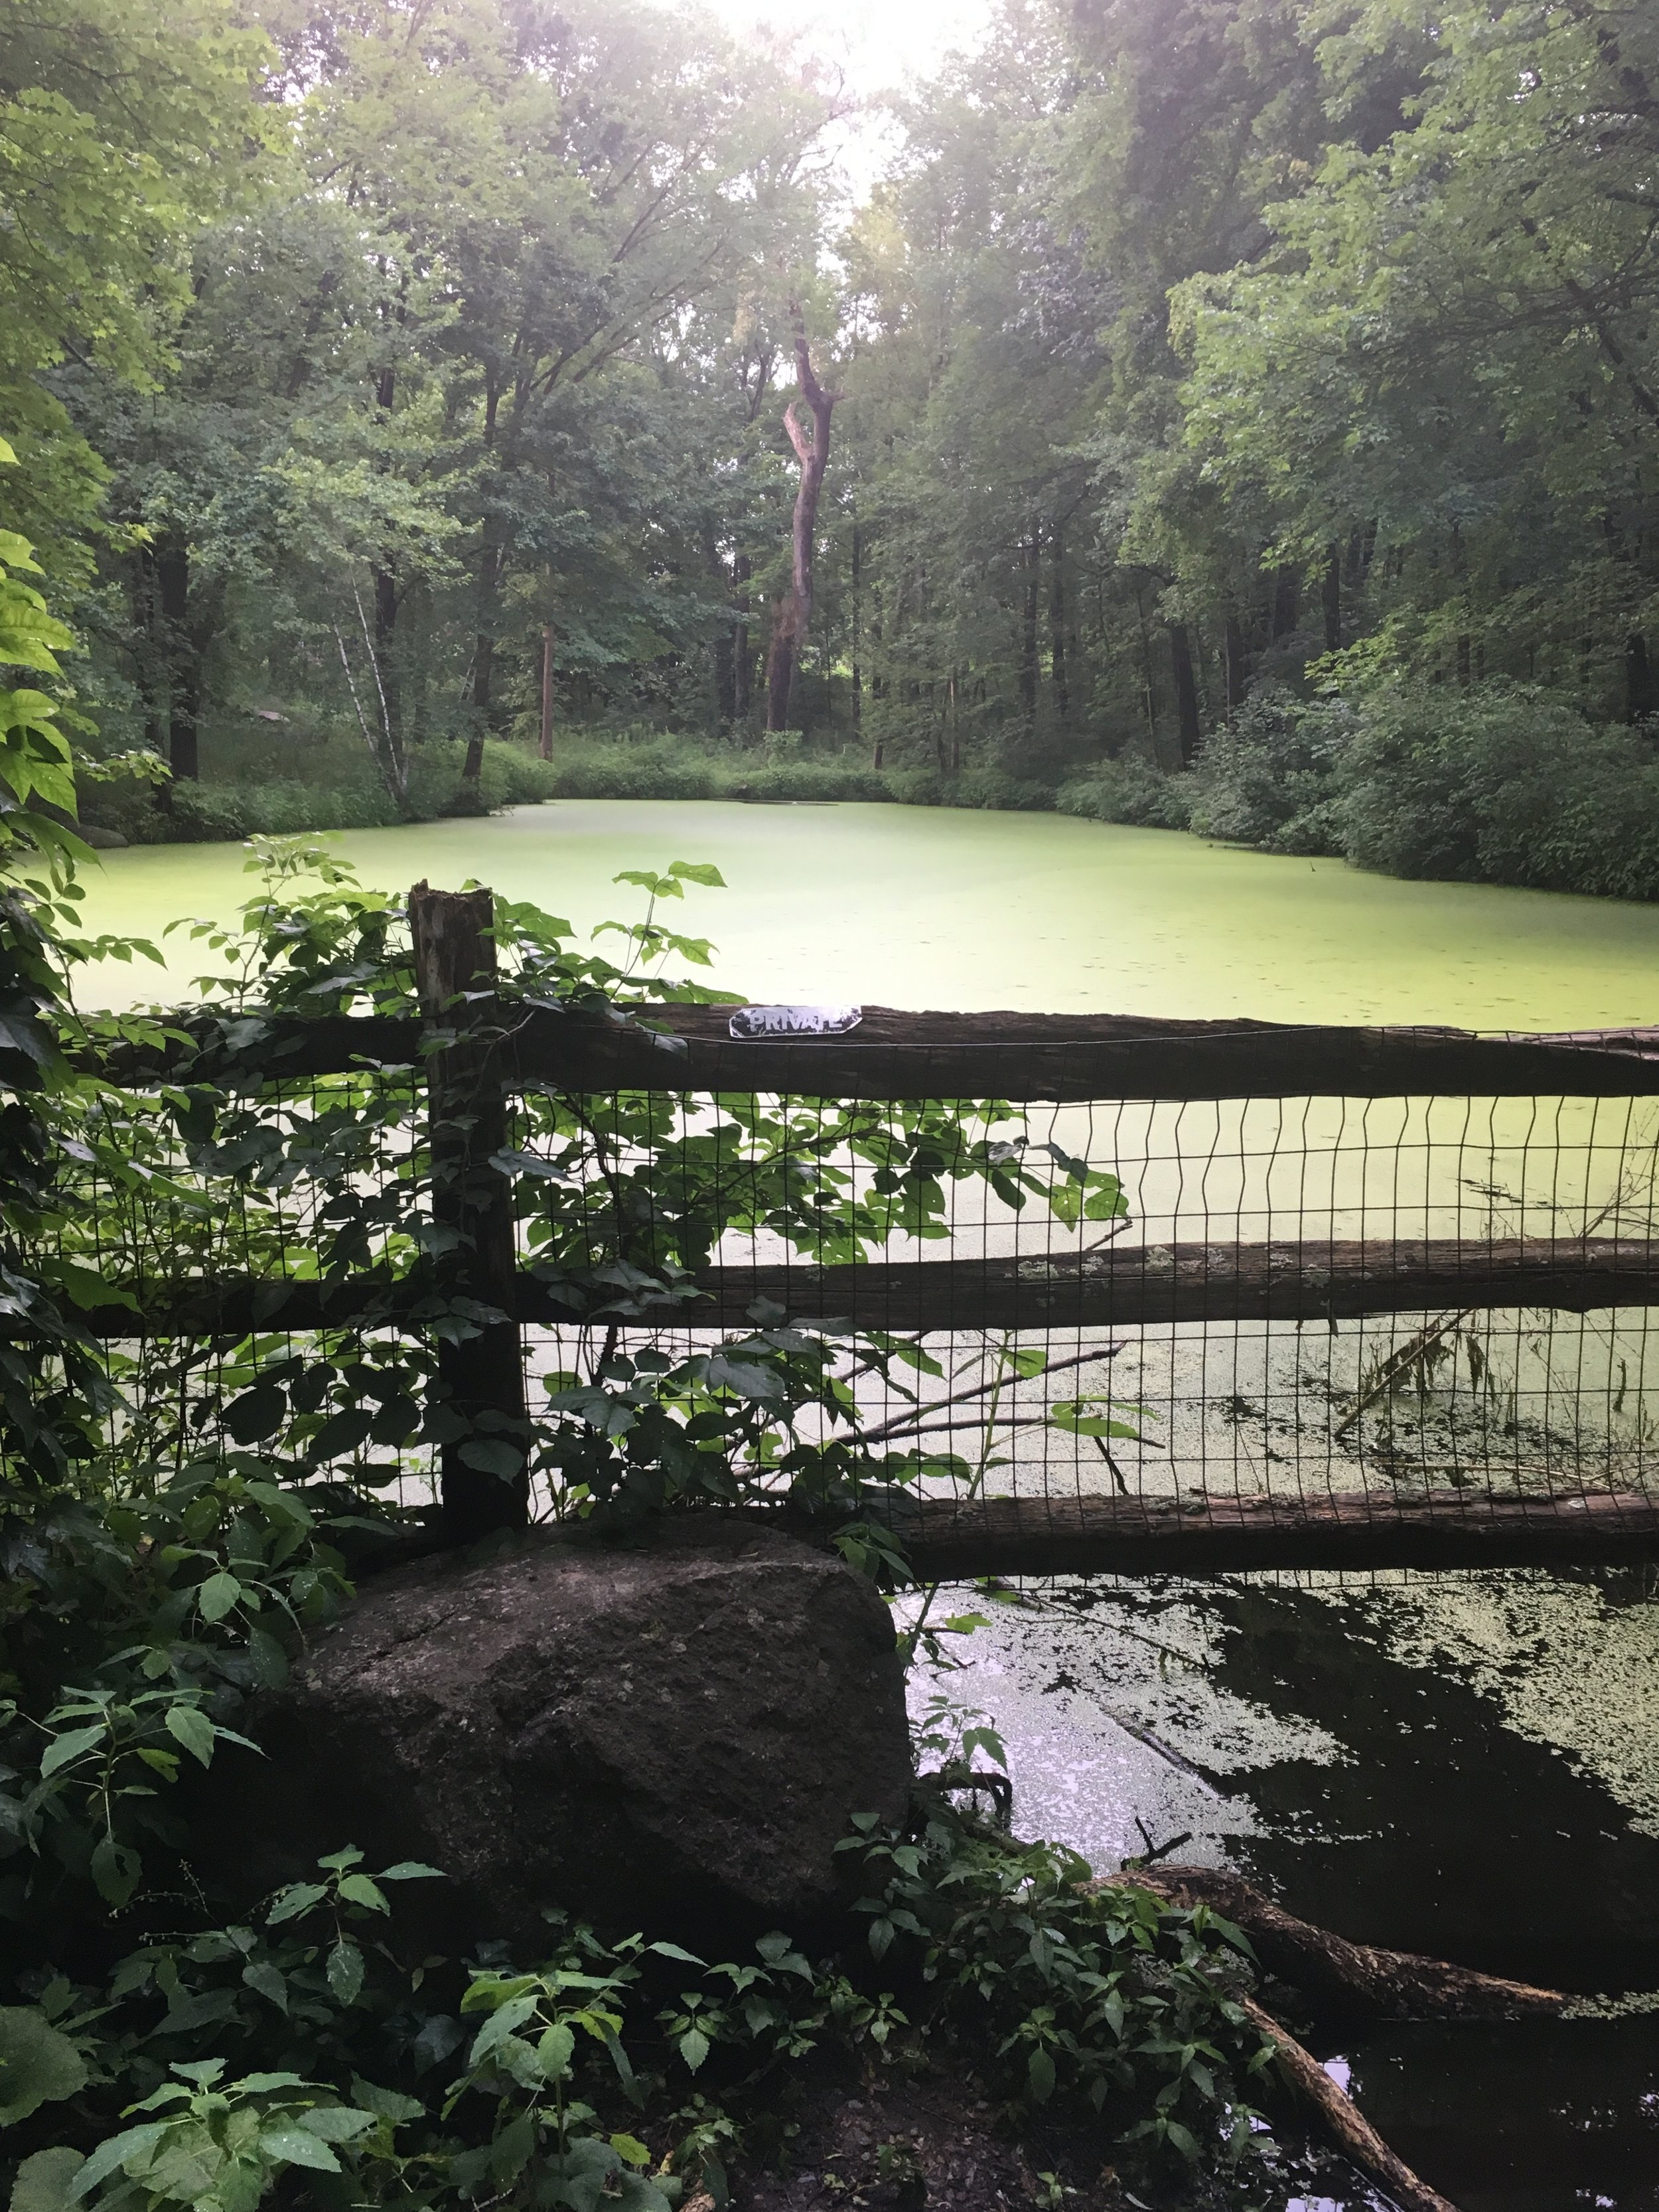 one of the ponds covered in leaves of tiny yellow-green duckweed during the summer